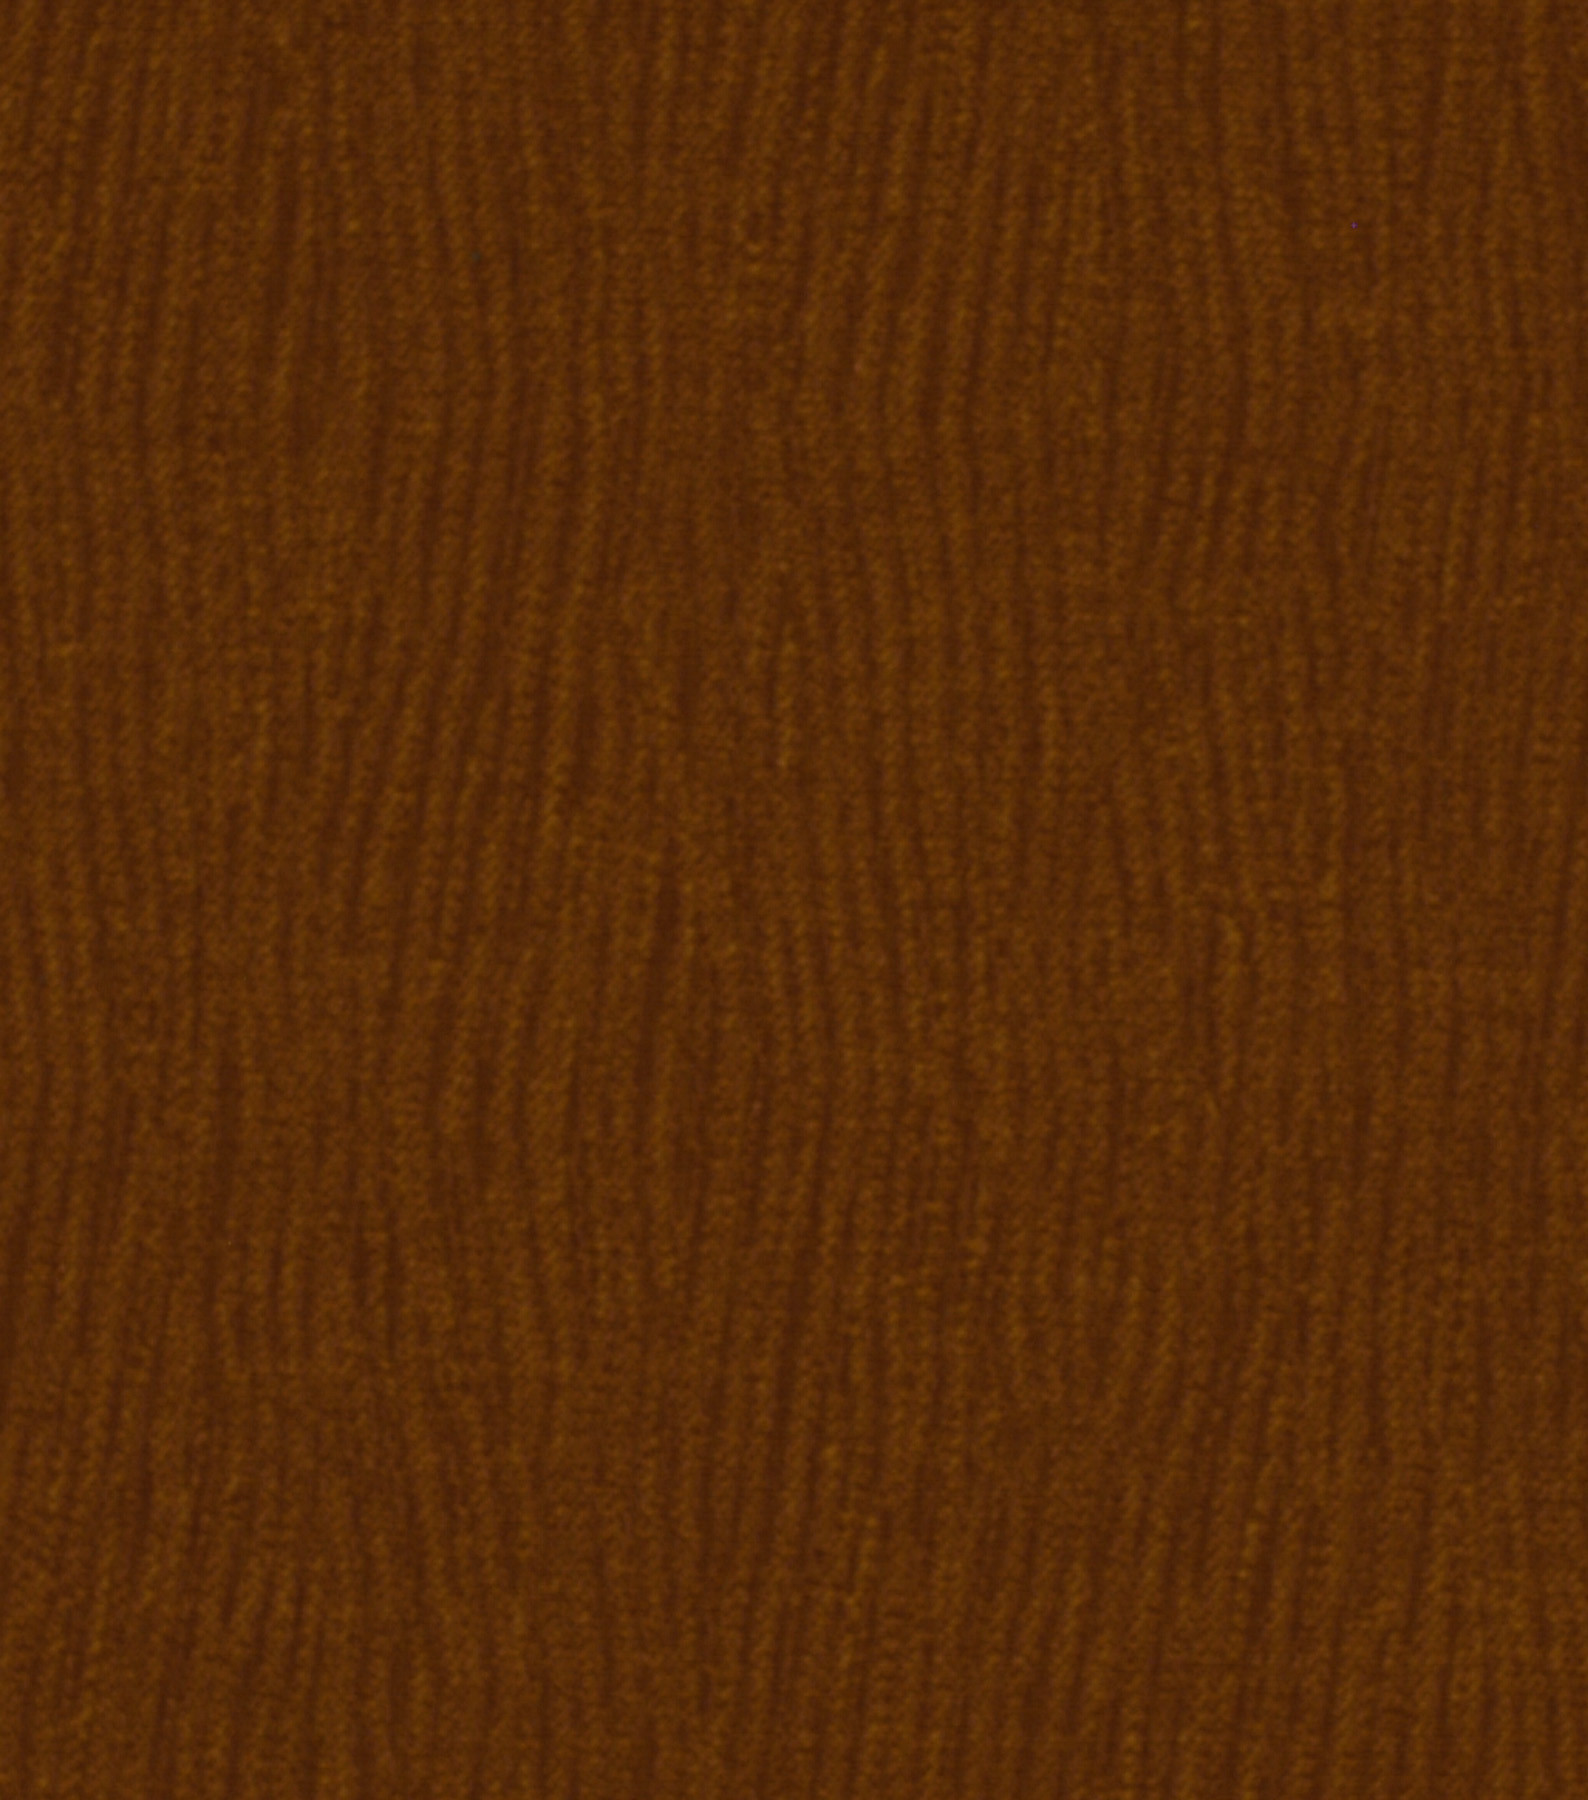 Home Decor 8\u0022x8\u0022 Fabric Swatch-Solid Fabric Signature Series Engraving Curry